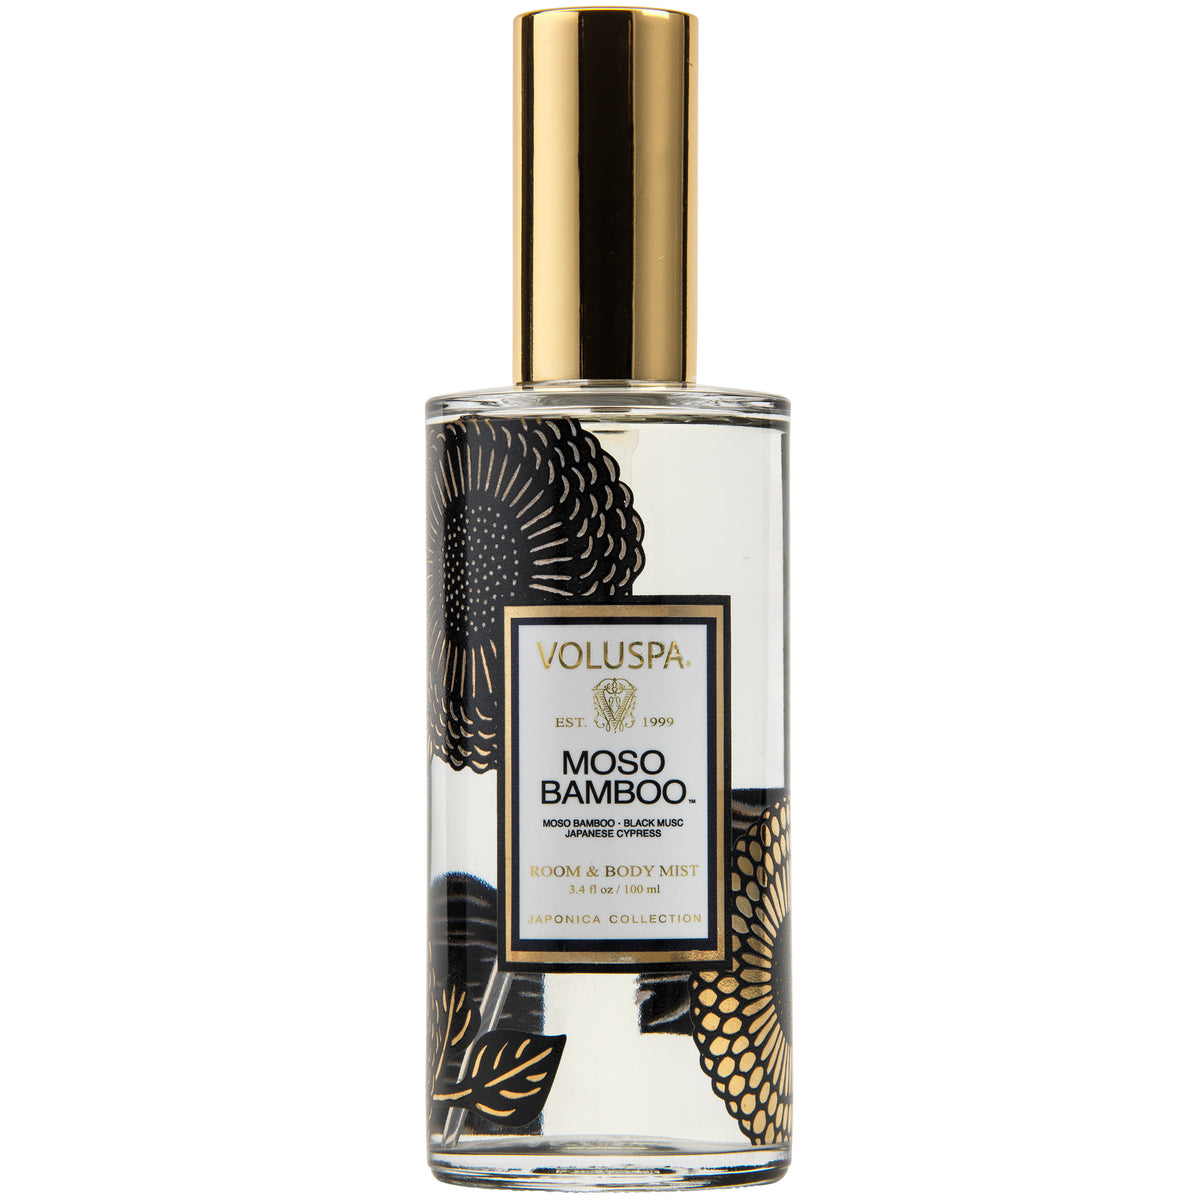 Moso Bamboo - Room & Body Spray - 1